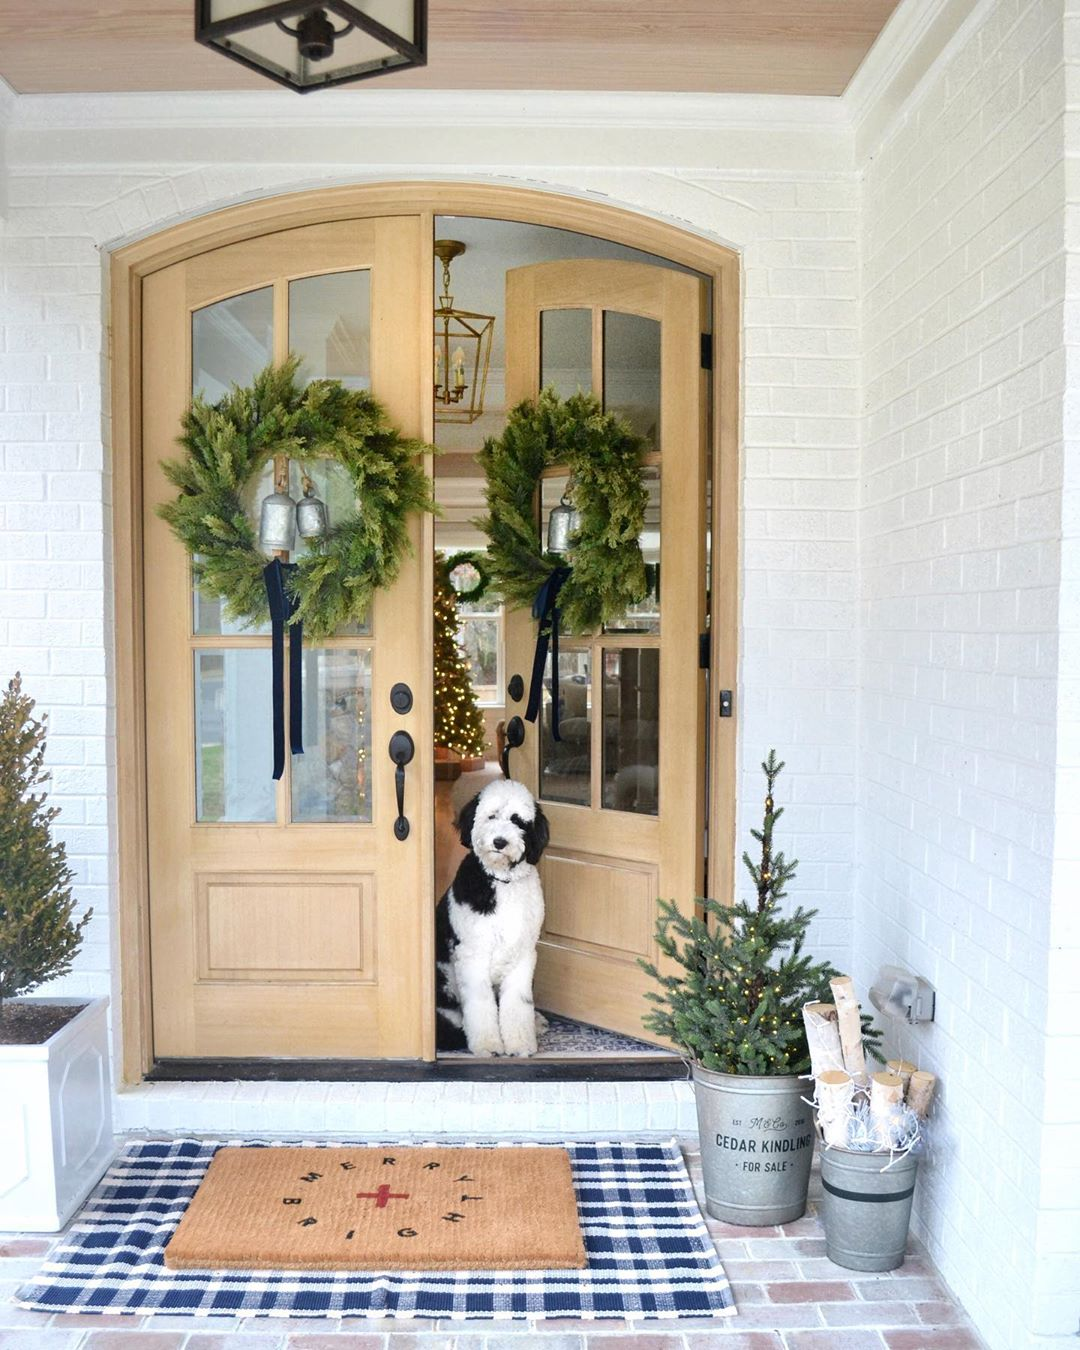 Holiday wreaths on front doors of white farmhouse with gorgeous metal roof. Charming inspiration if you love white painted house exteriors! #whitehouses #housedesign #exteriors #whitefarmhouse #holidaydecor #frontdoordecor #christmaswreaths